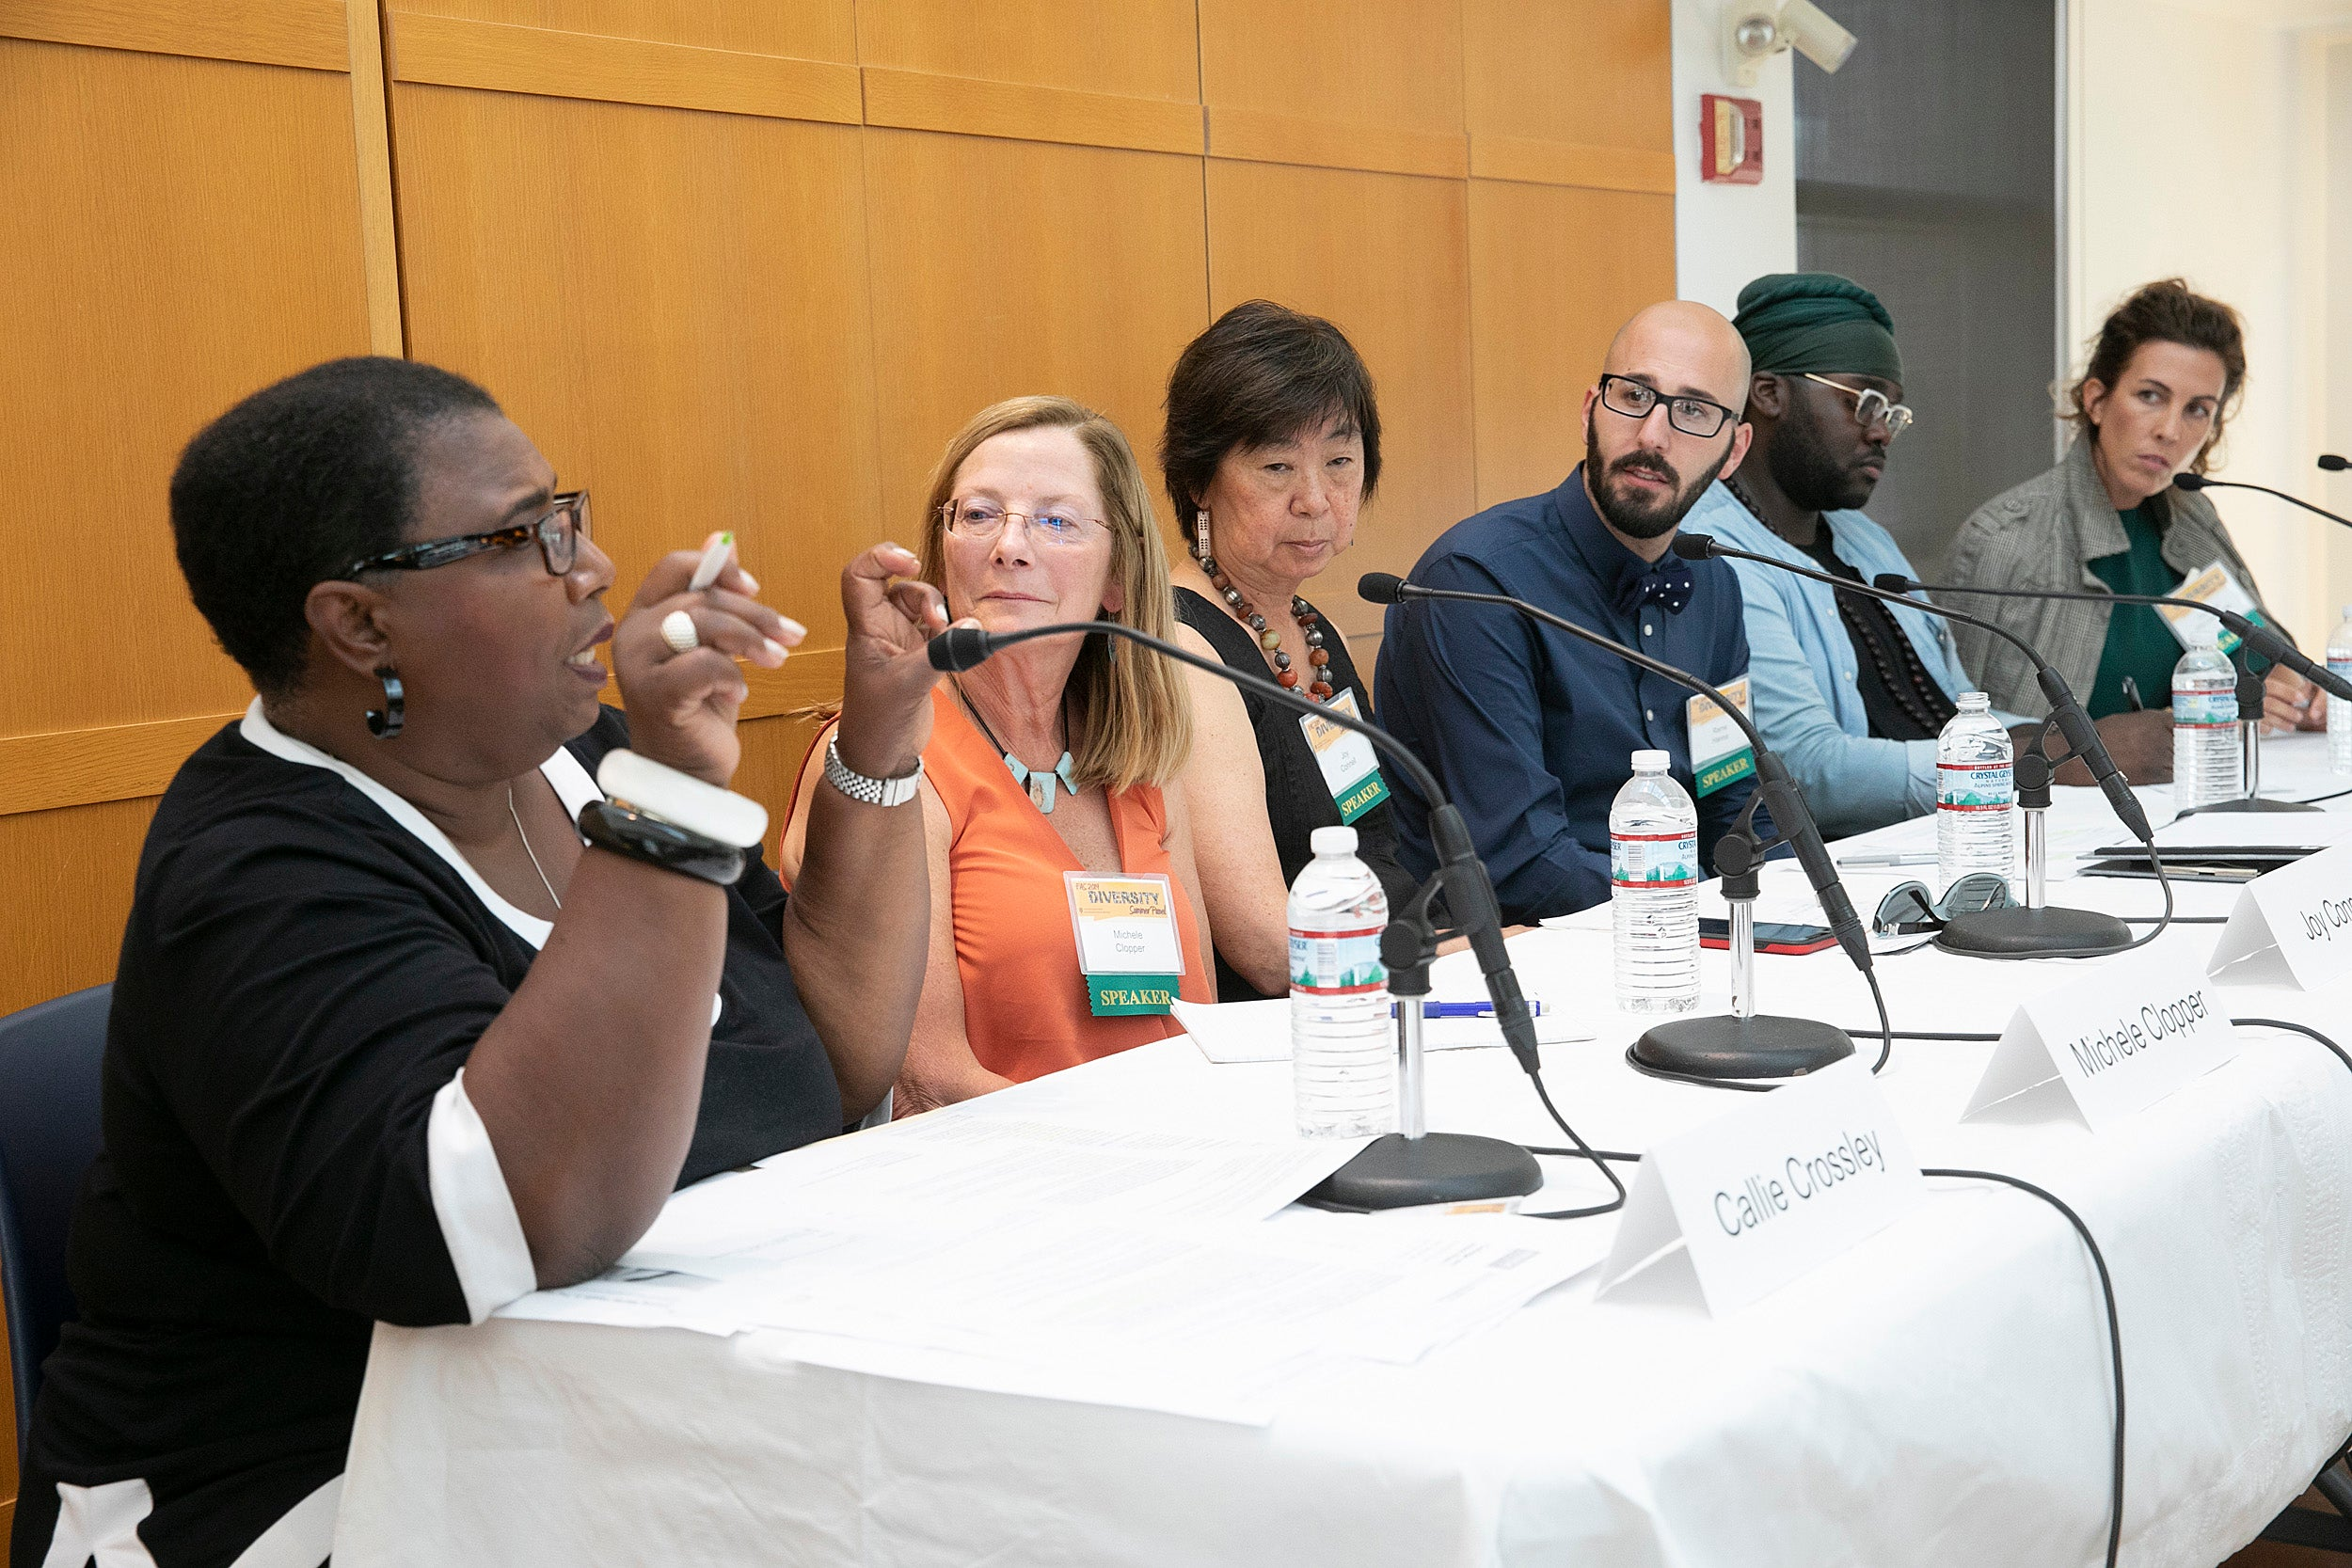 WGBH host Callie Crossley leads a panel on mental health in discussion at Harvard.